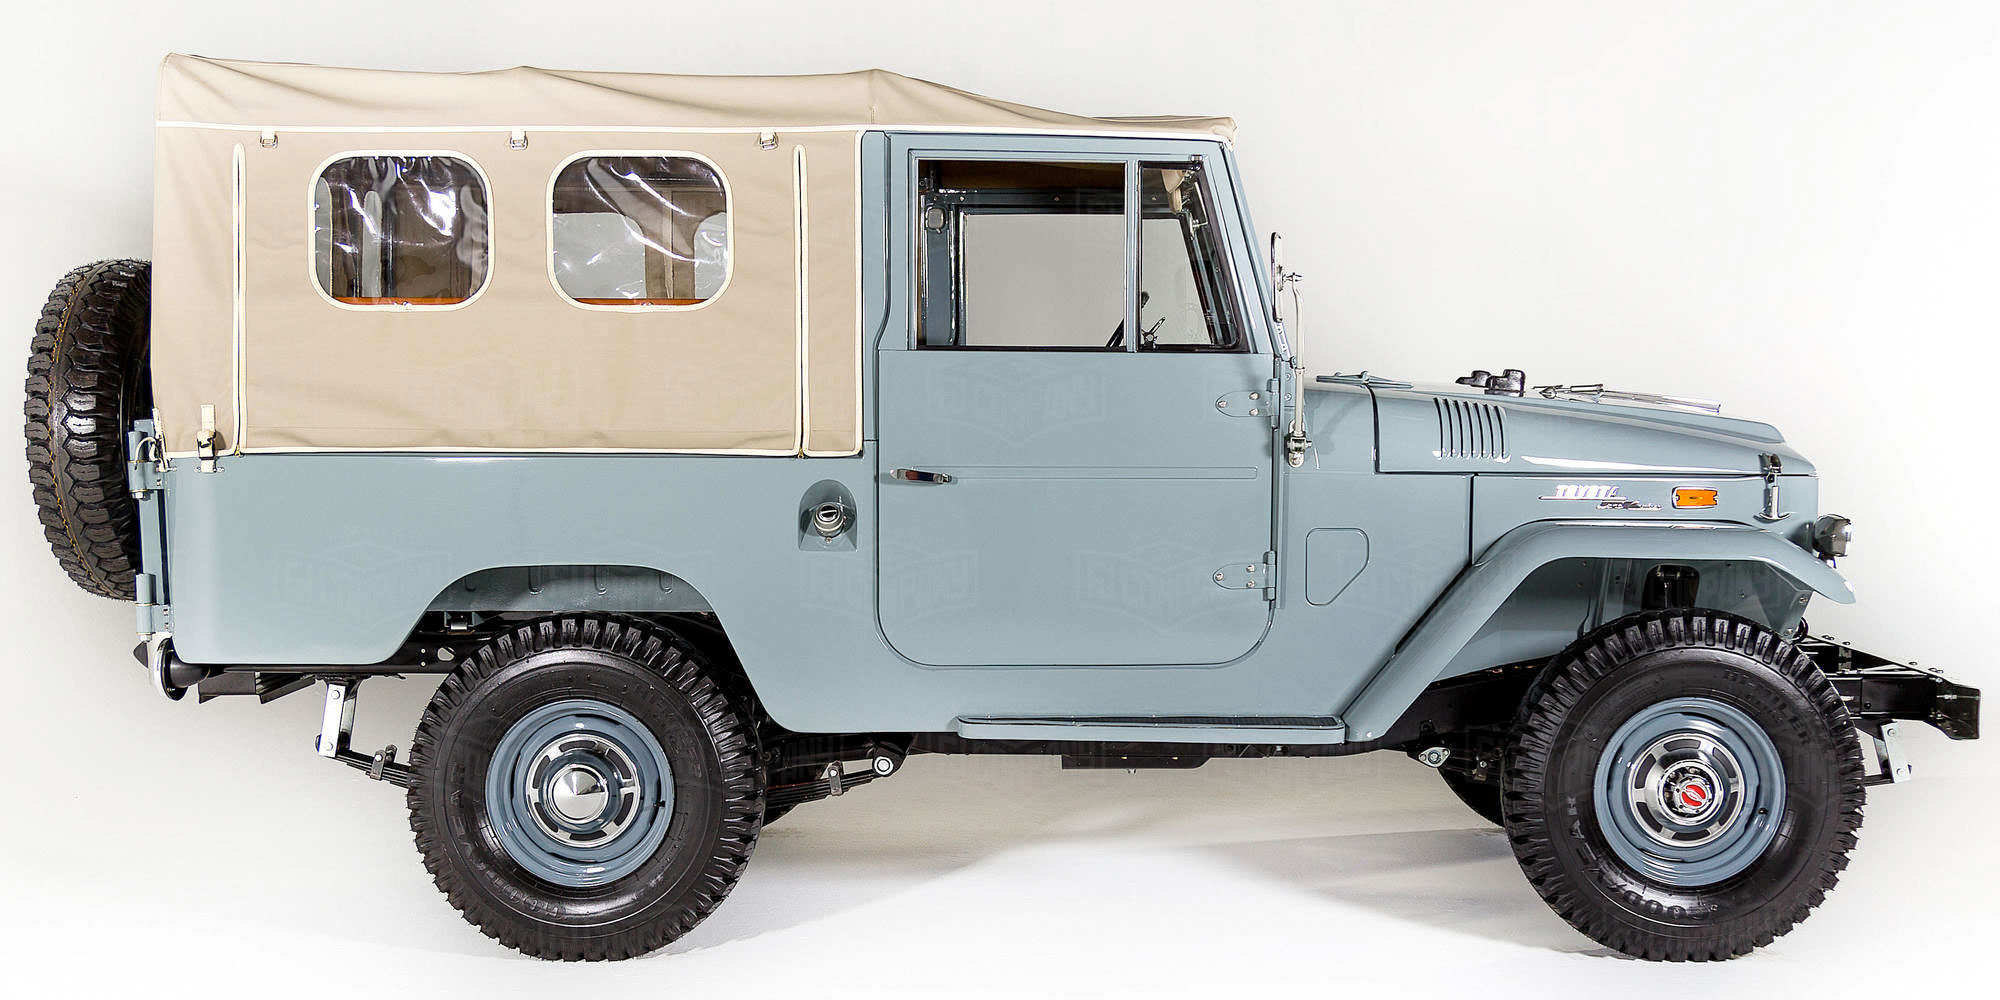 1971 Toyota Land Cruiser FJ43 Grey FJ43